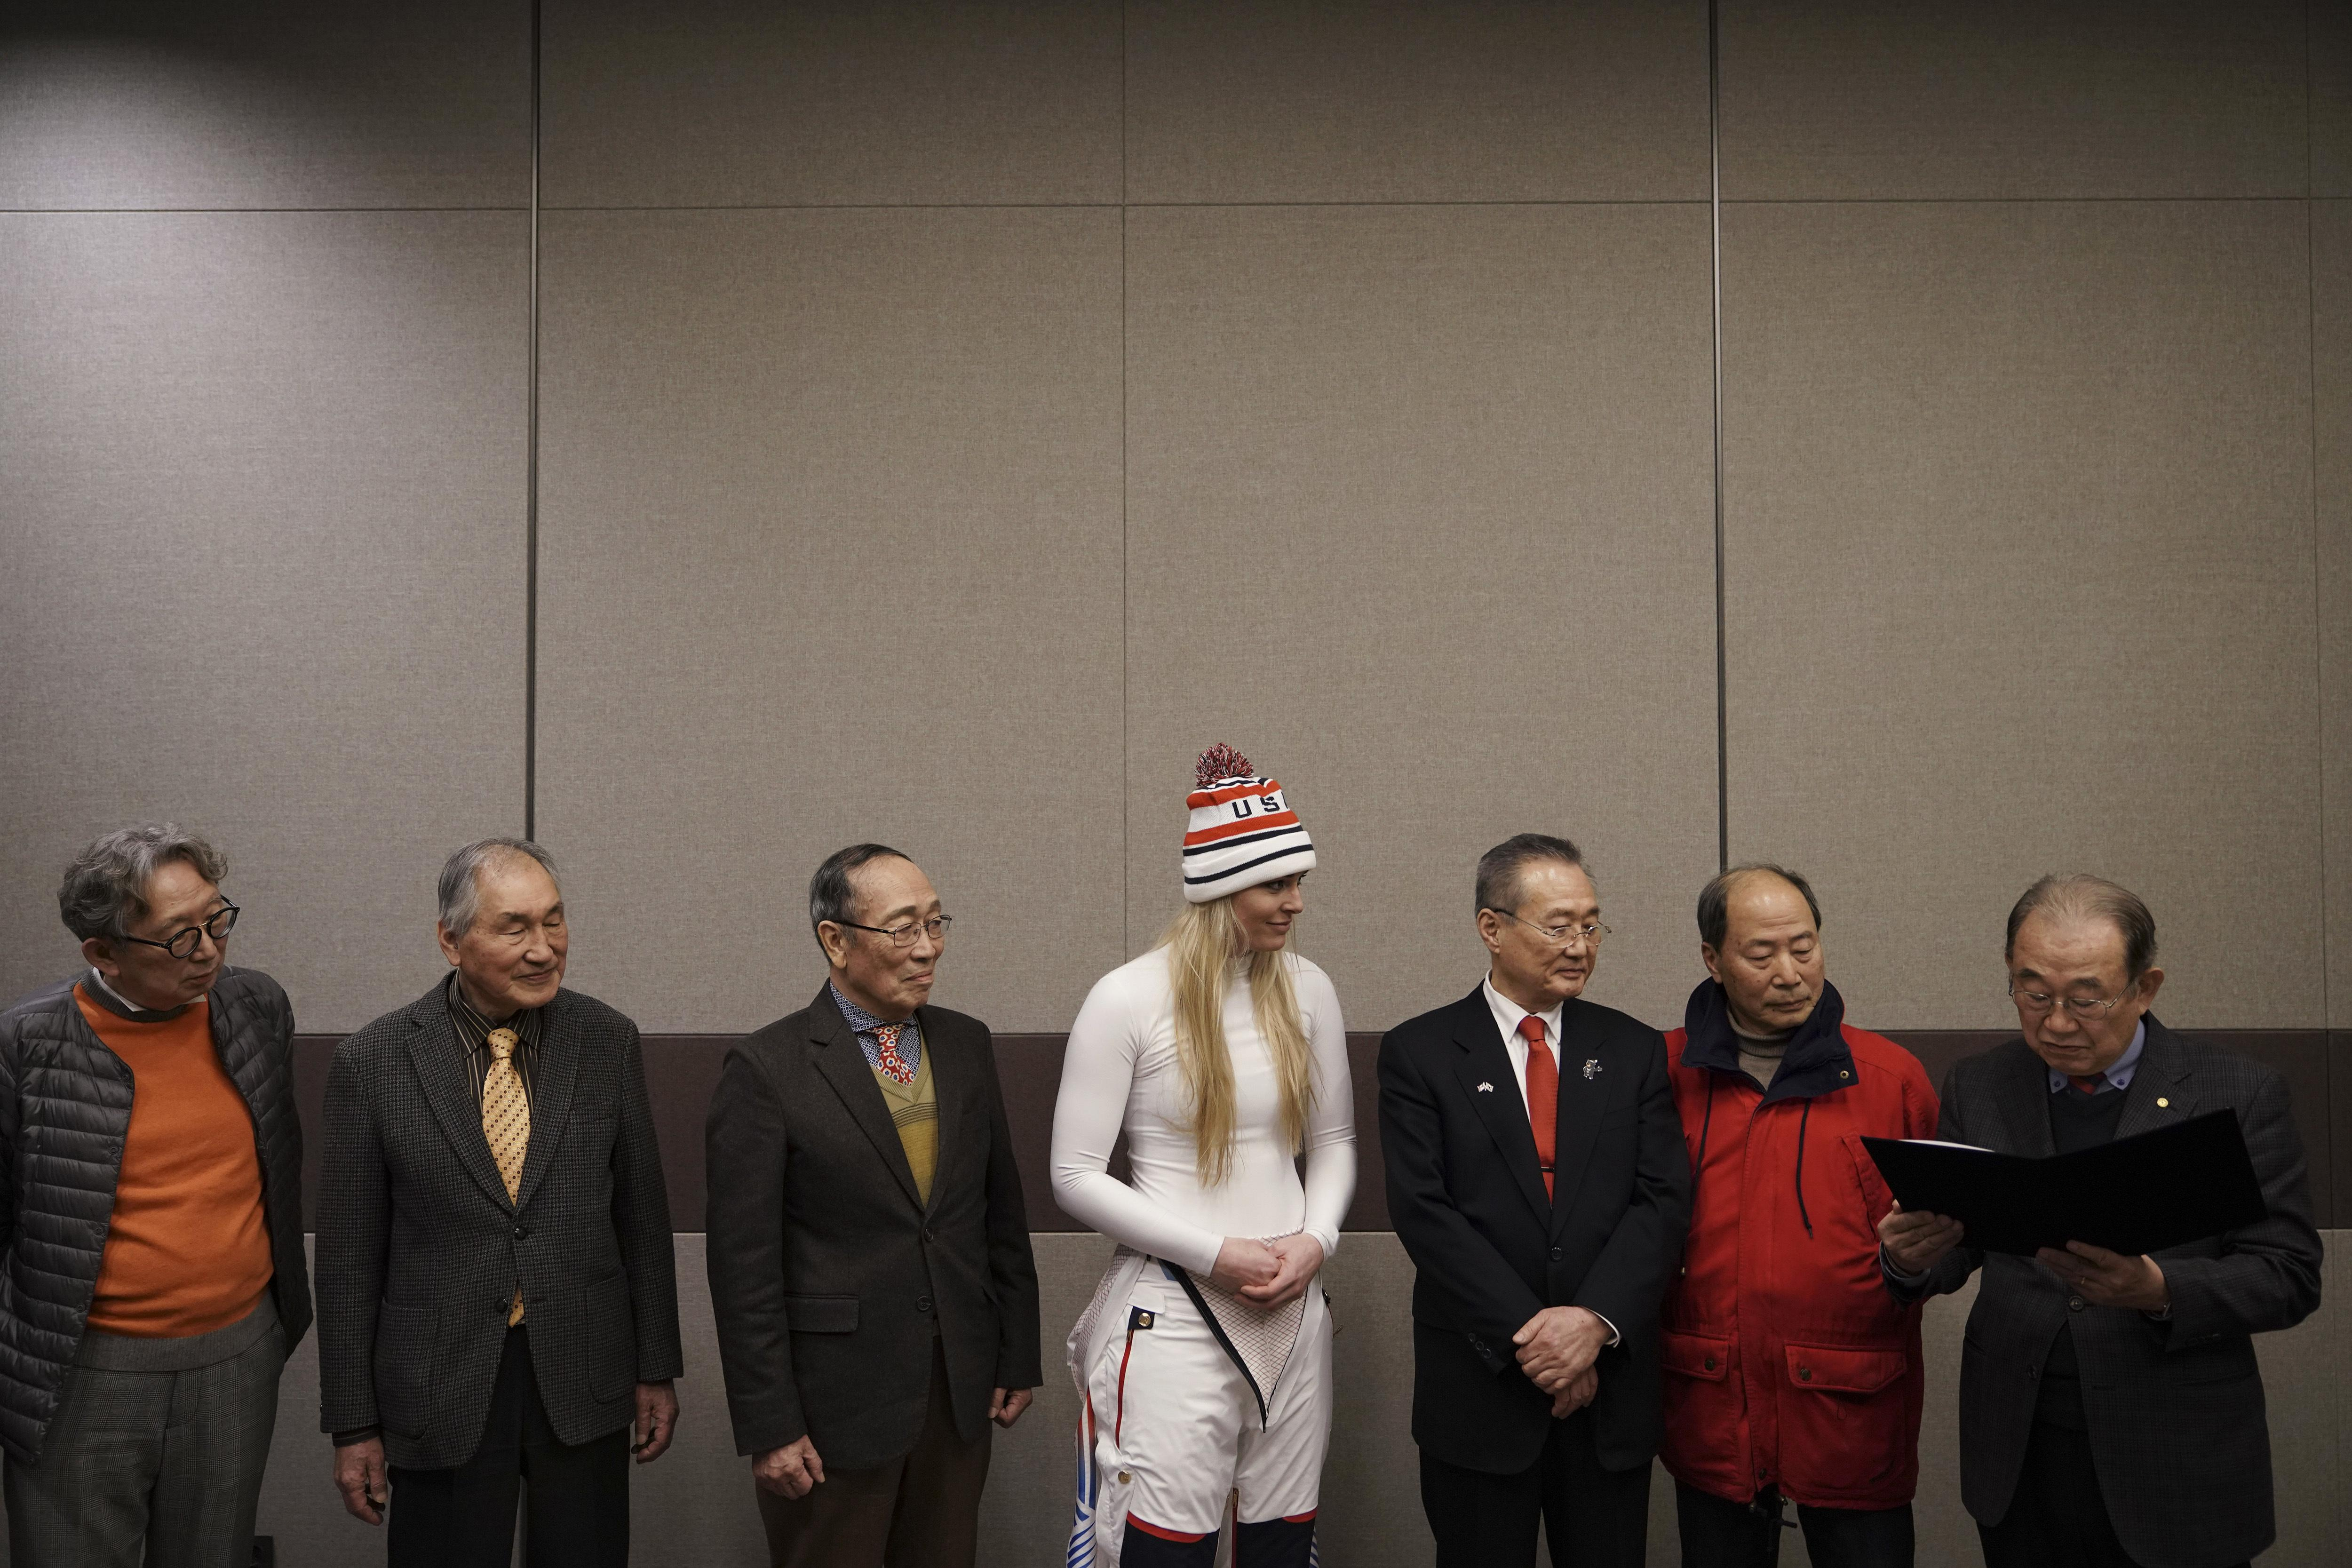 Lindsey Vonn scattered some of her grandad's ashes in South Korea